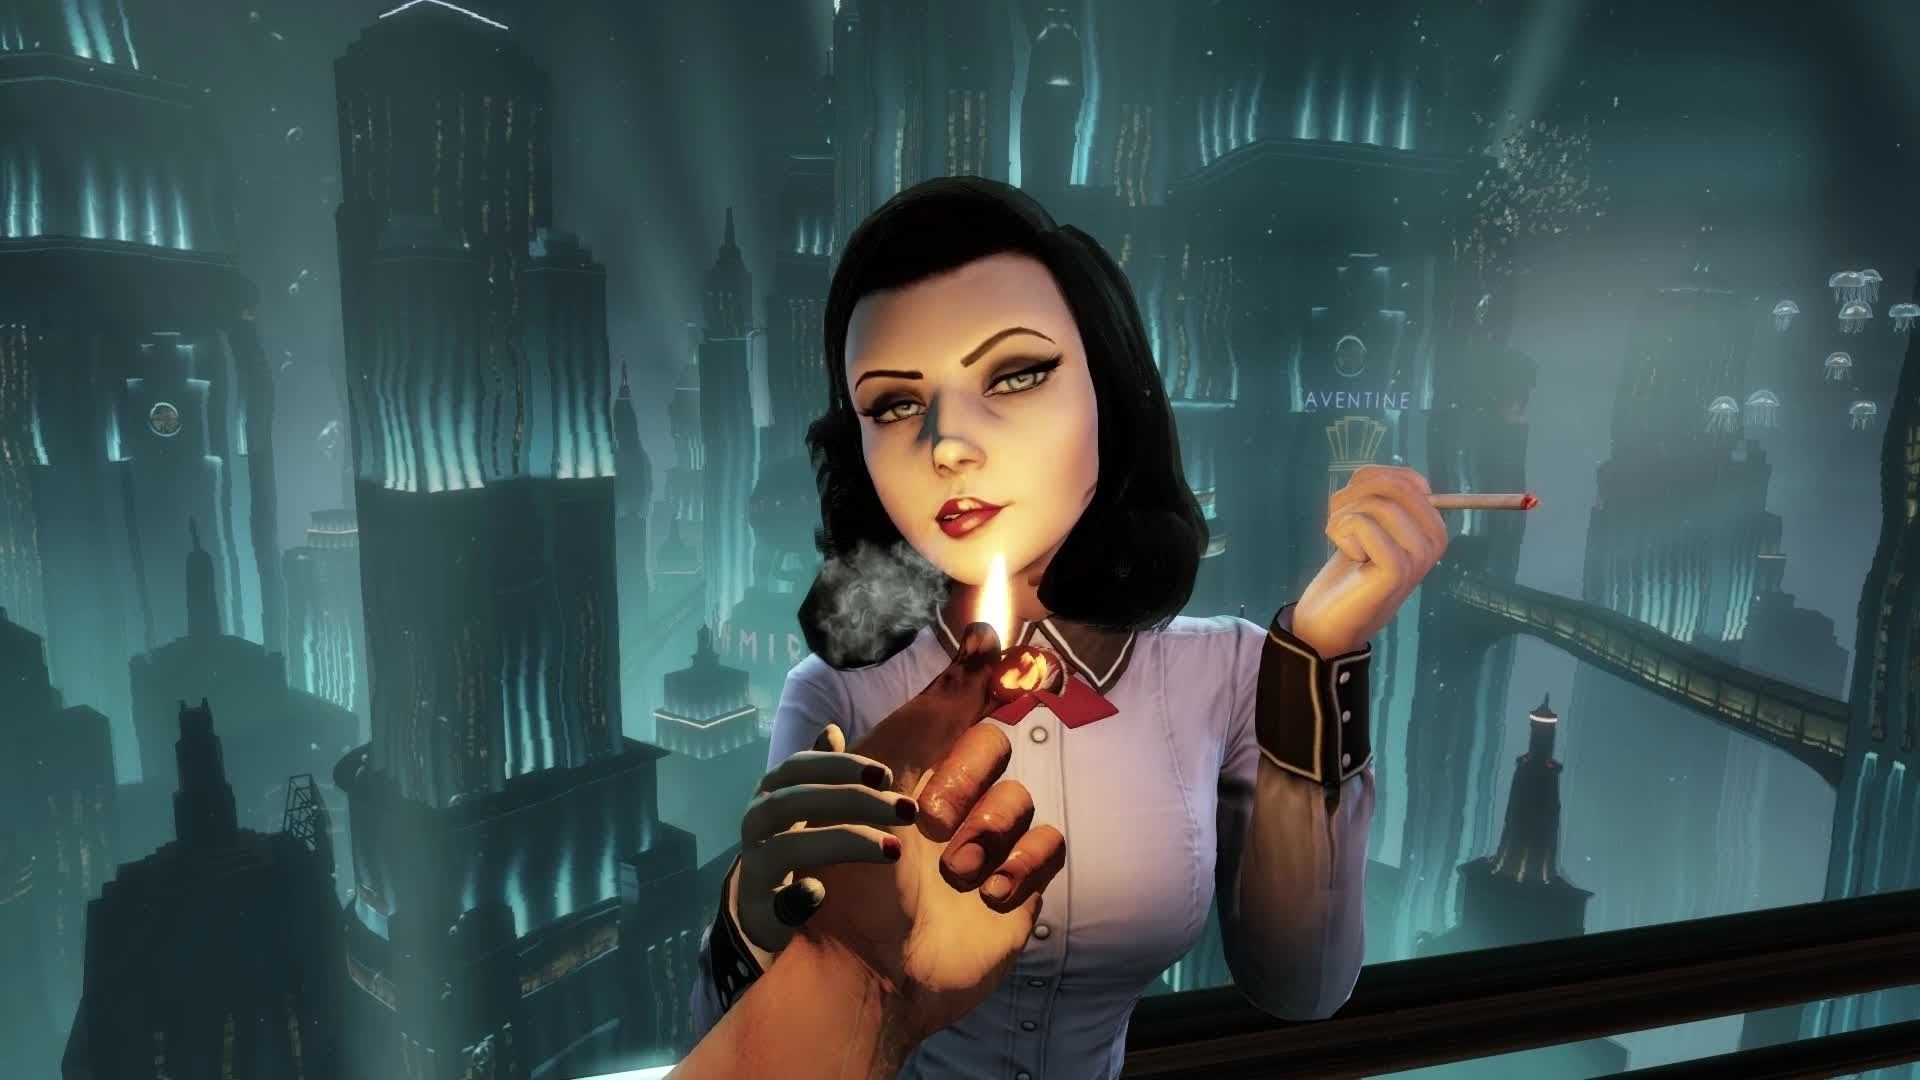 Bioshock Rapture Wallpaper x More information